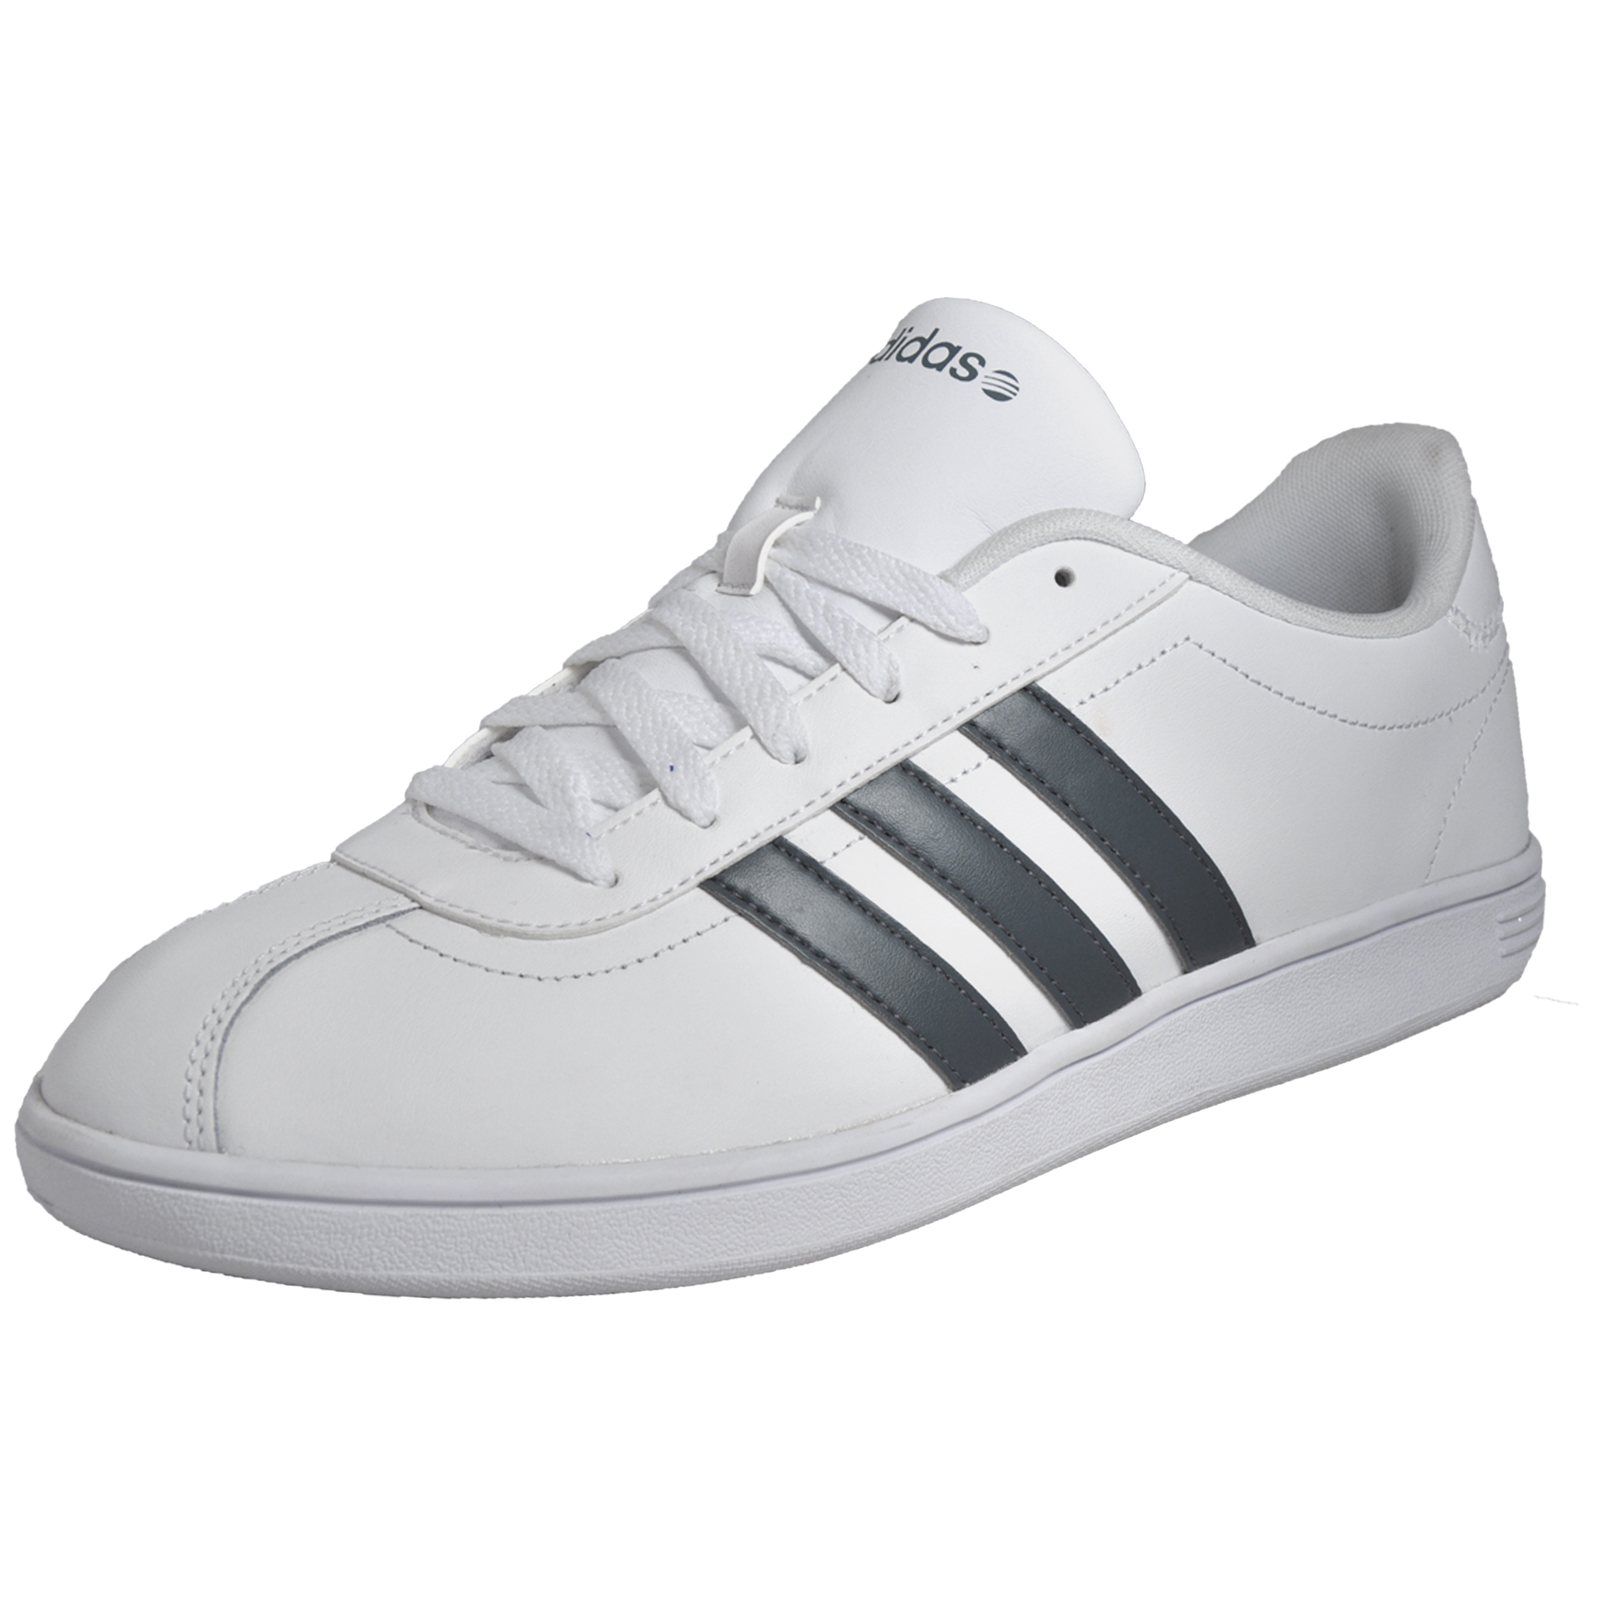 adidas vl neo court mens classic casual retro trainers white ebay. Black Bedroom Furniture Sets. Home Design Ideas